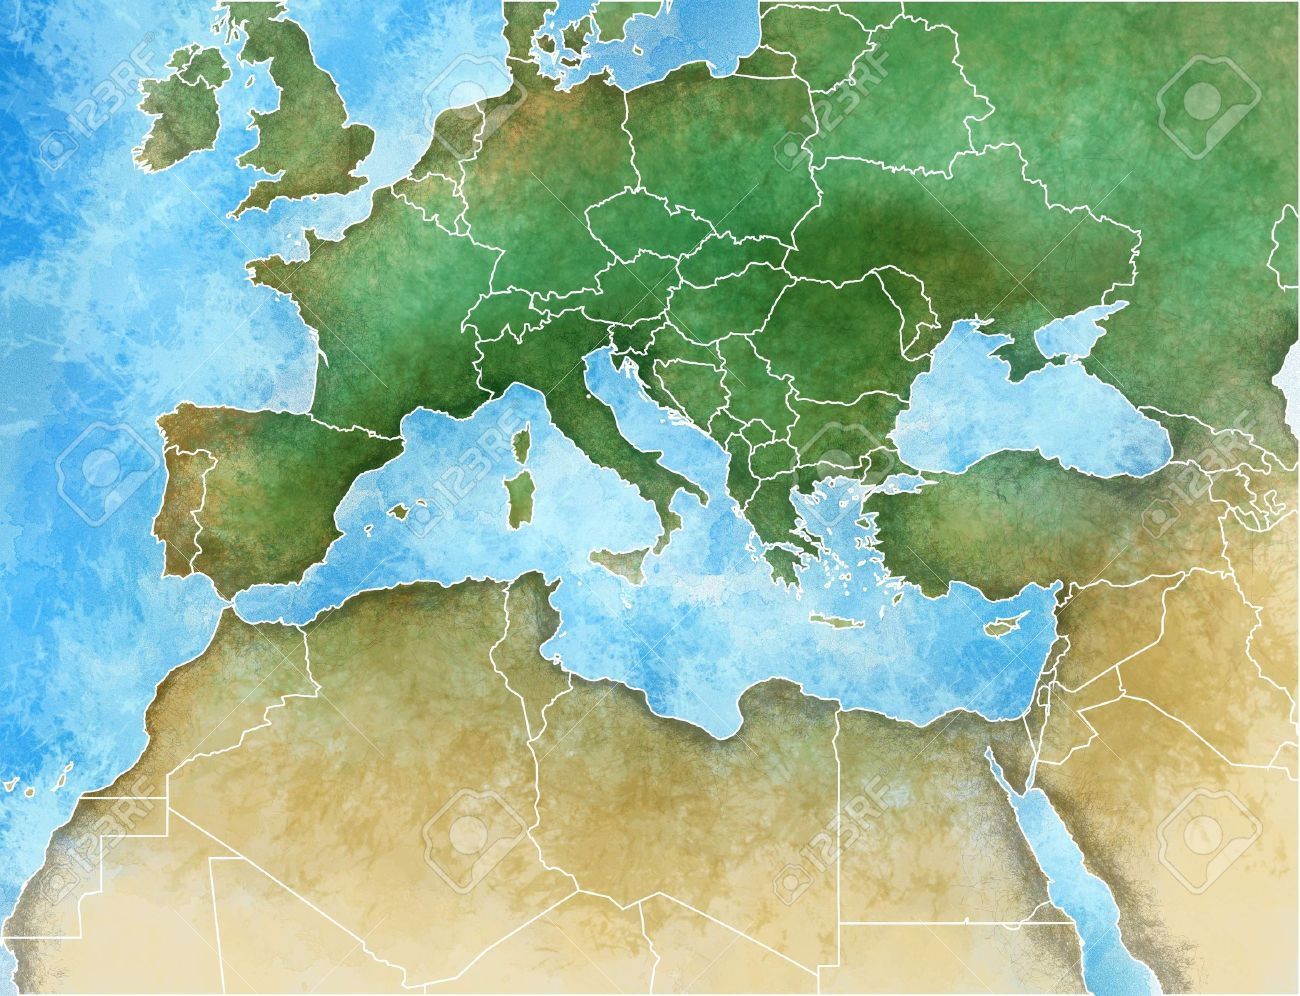 Hand-drawn map of the Mediterranean, Europe, Africa and Middle..